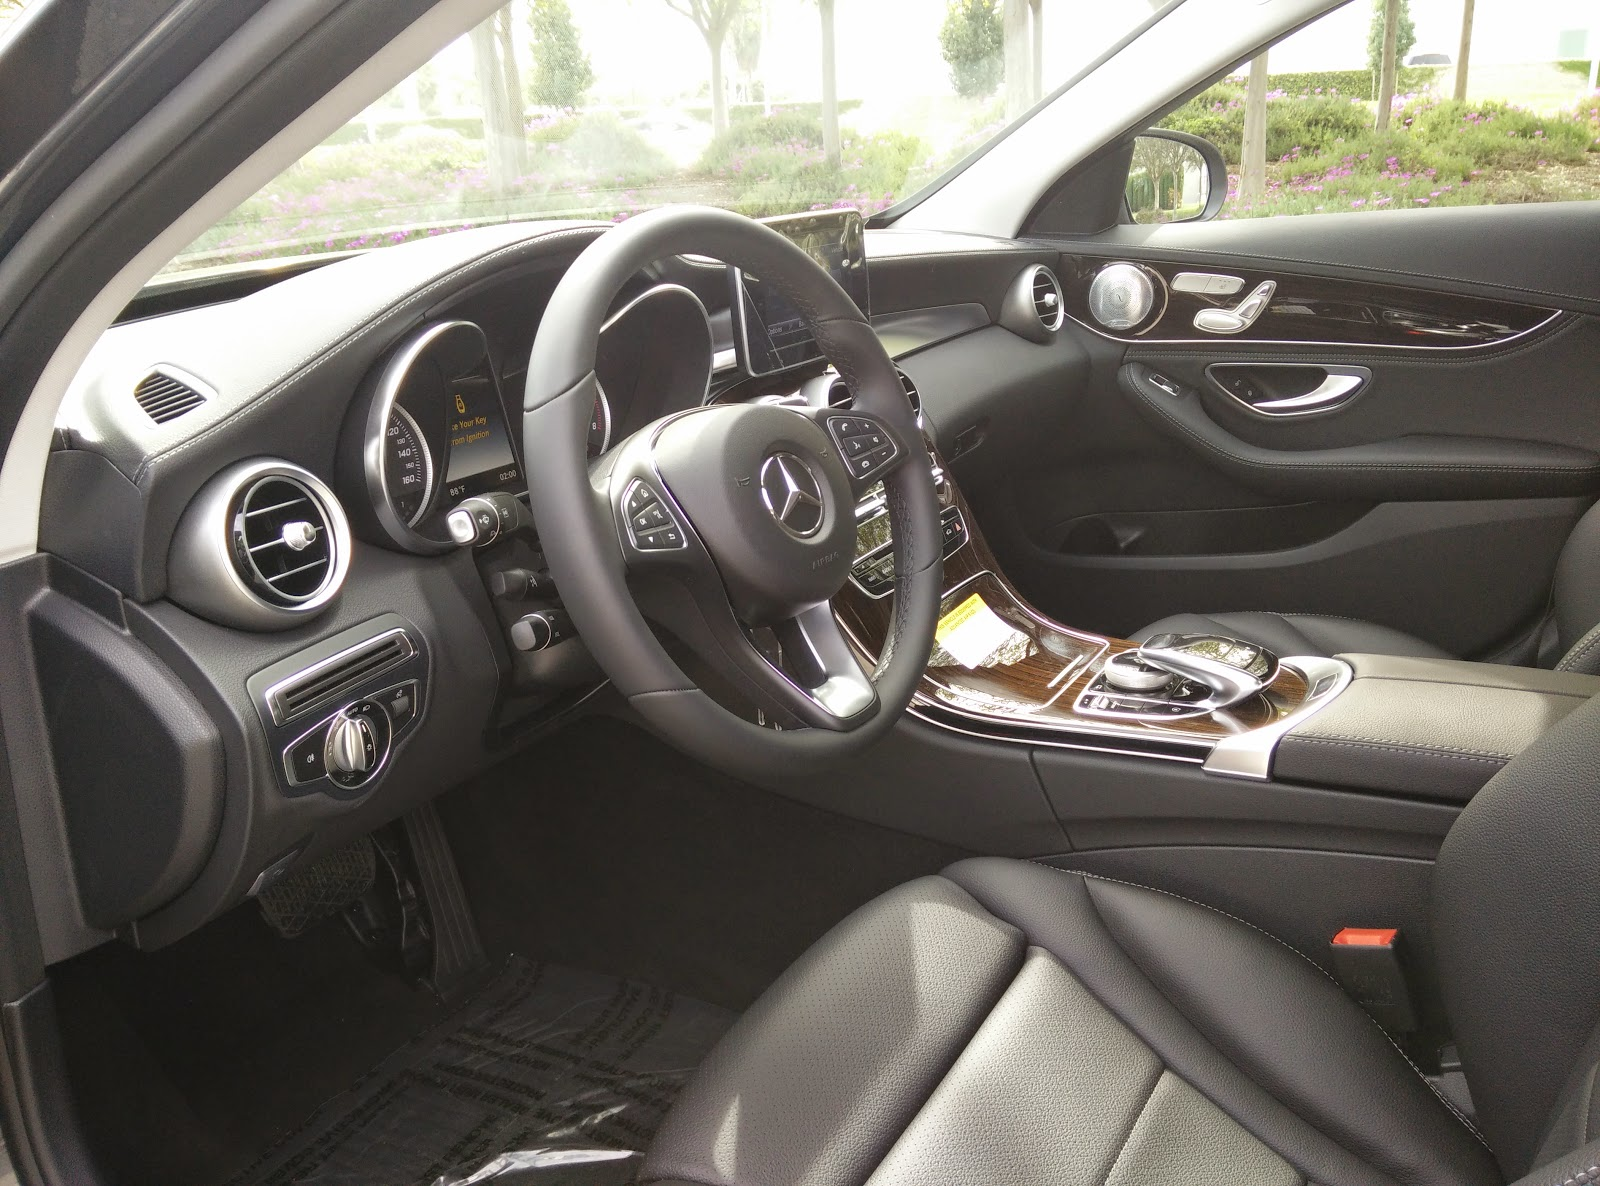 hight resolution of if there is one thing i definitely have to give mercedes benz credit for it is their interiors the interior of this particular c300 actually looks and